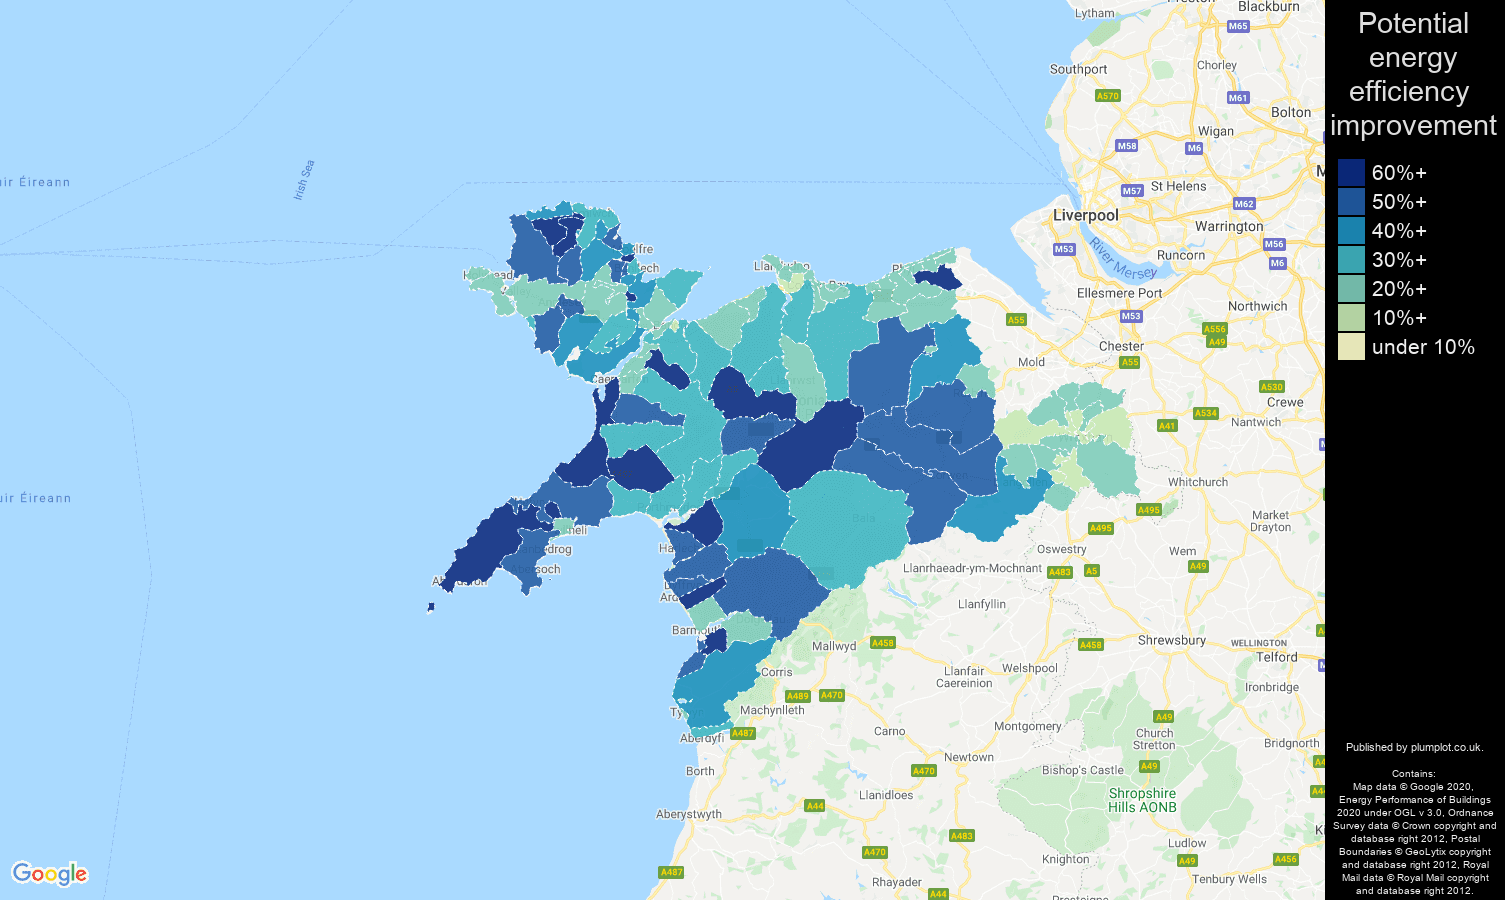 Llandudno map of potential energy efficiency improvement of properties